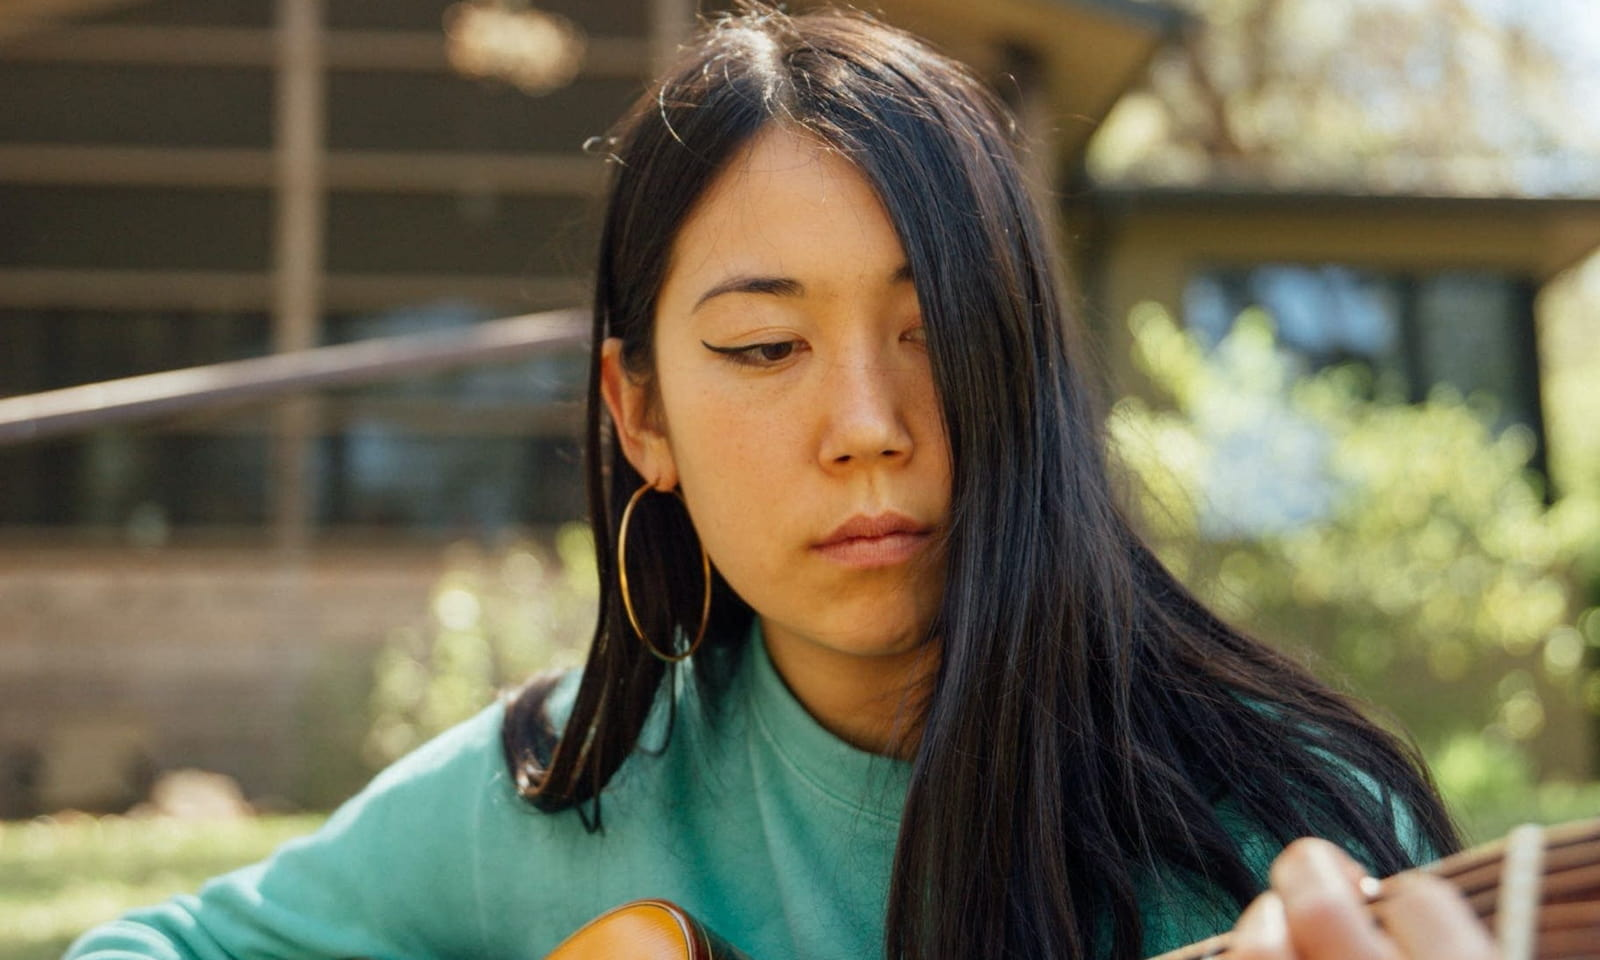 Sasami Ashworth, the Multi-instrumentalist Queer Singer You Need to Listen to